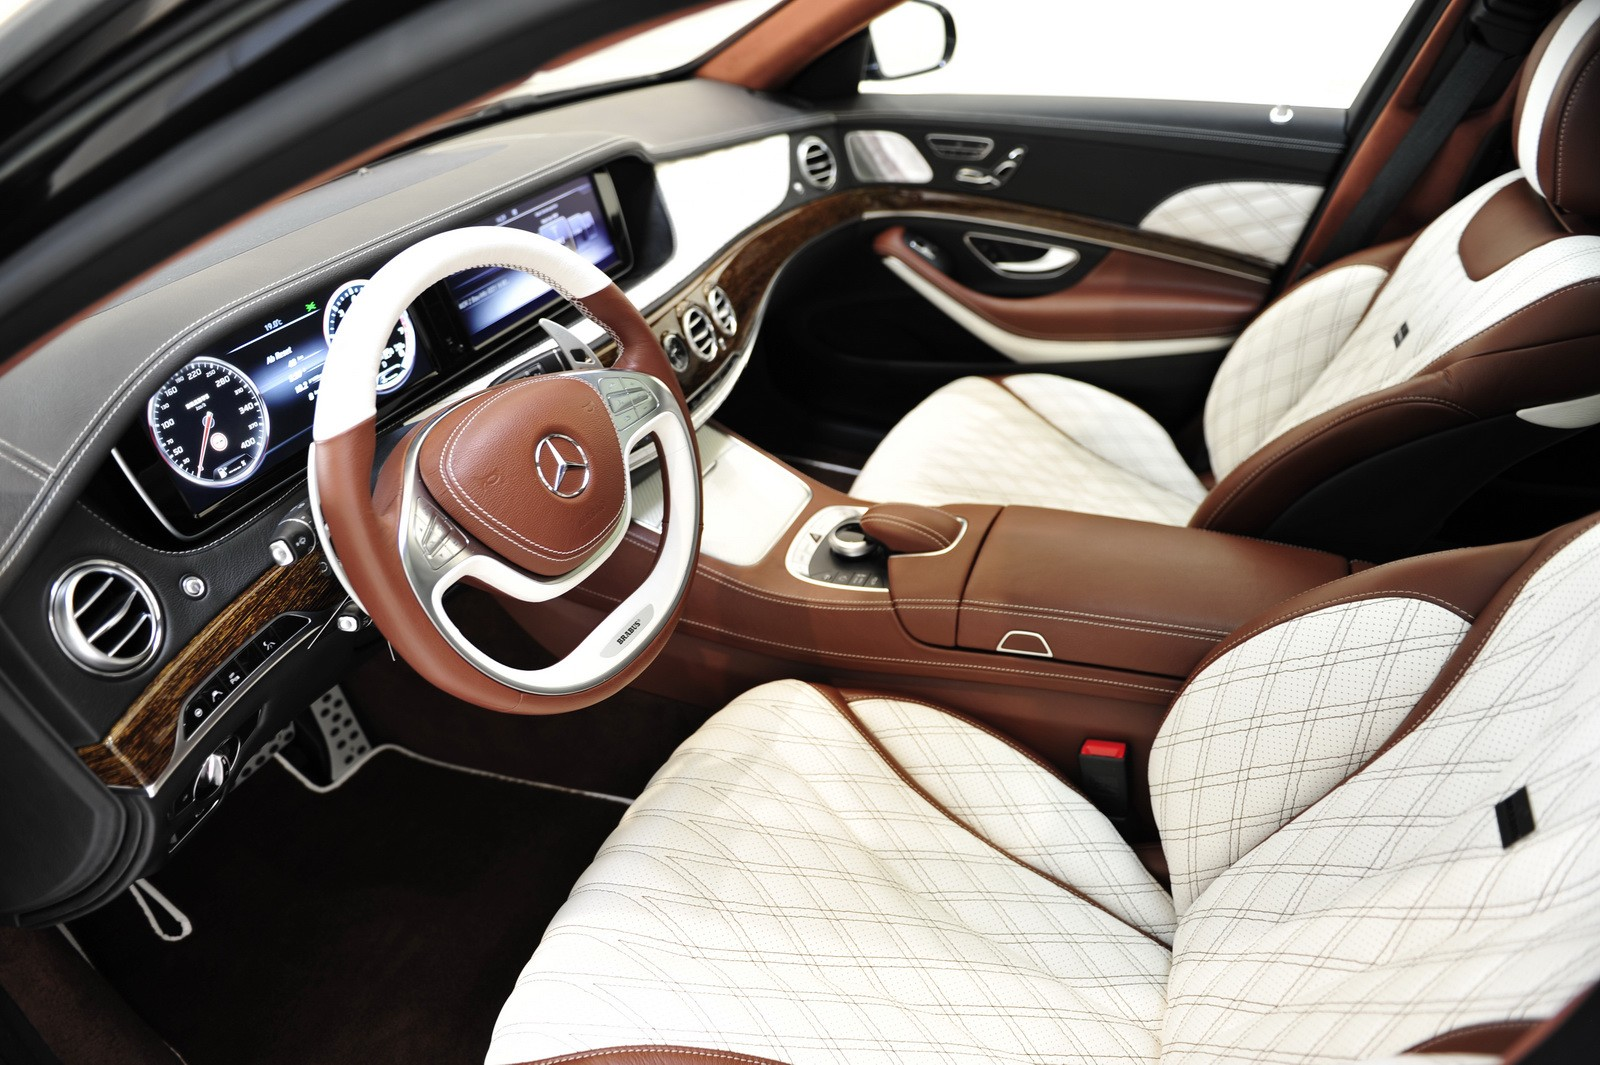 Brabus Throws 900 Hp Into The Mercedes Maybach S600 Casts Opulent Interior Autoevolution